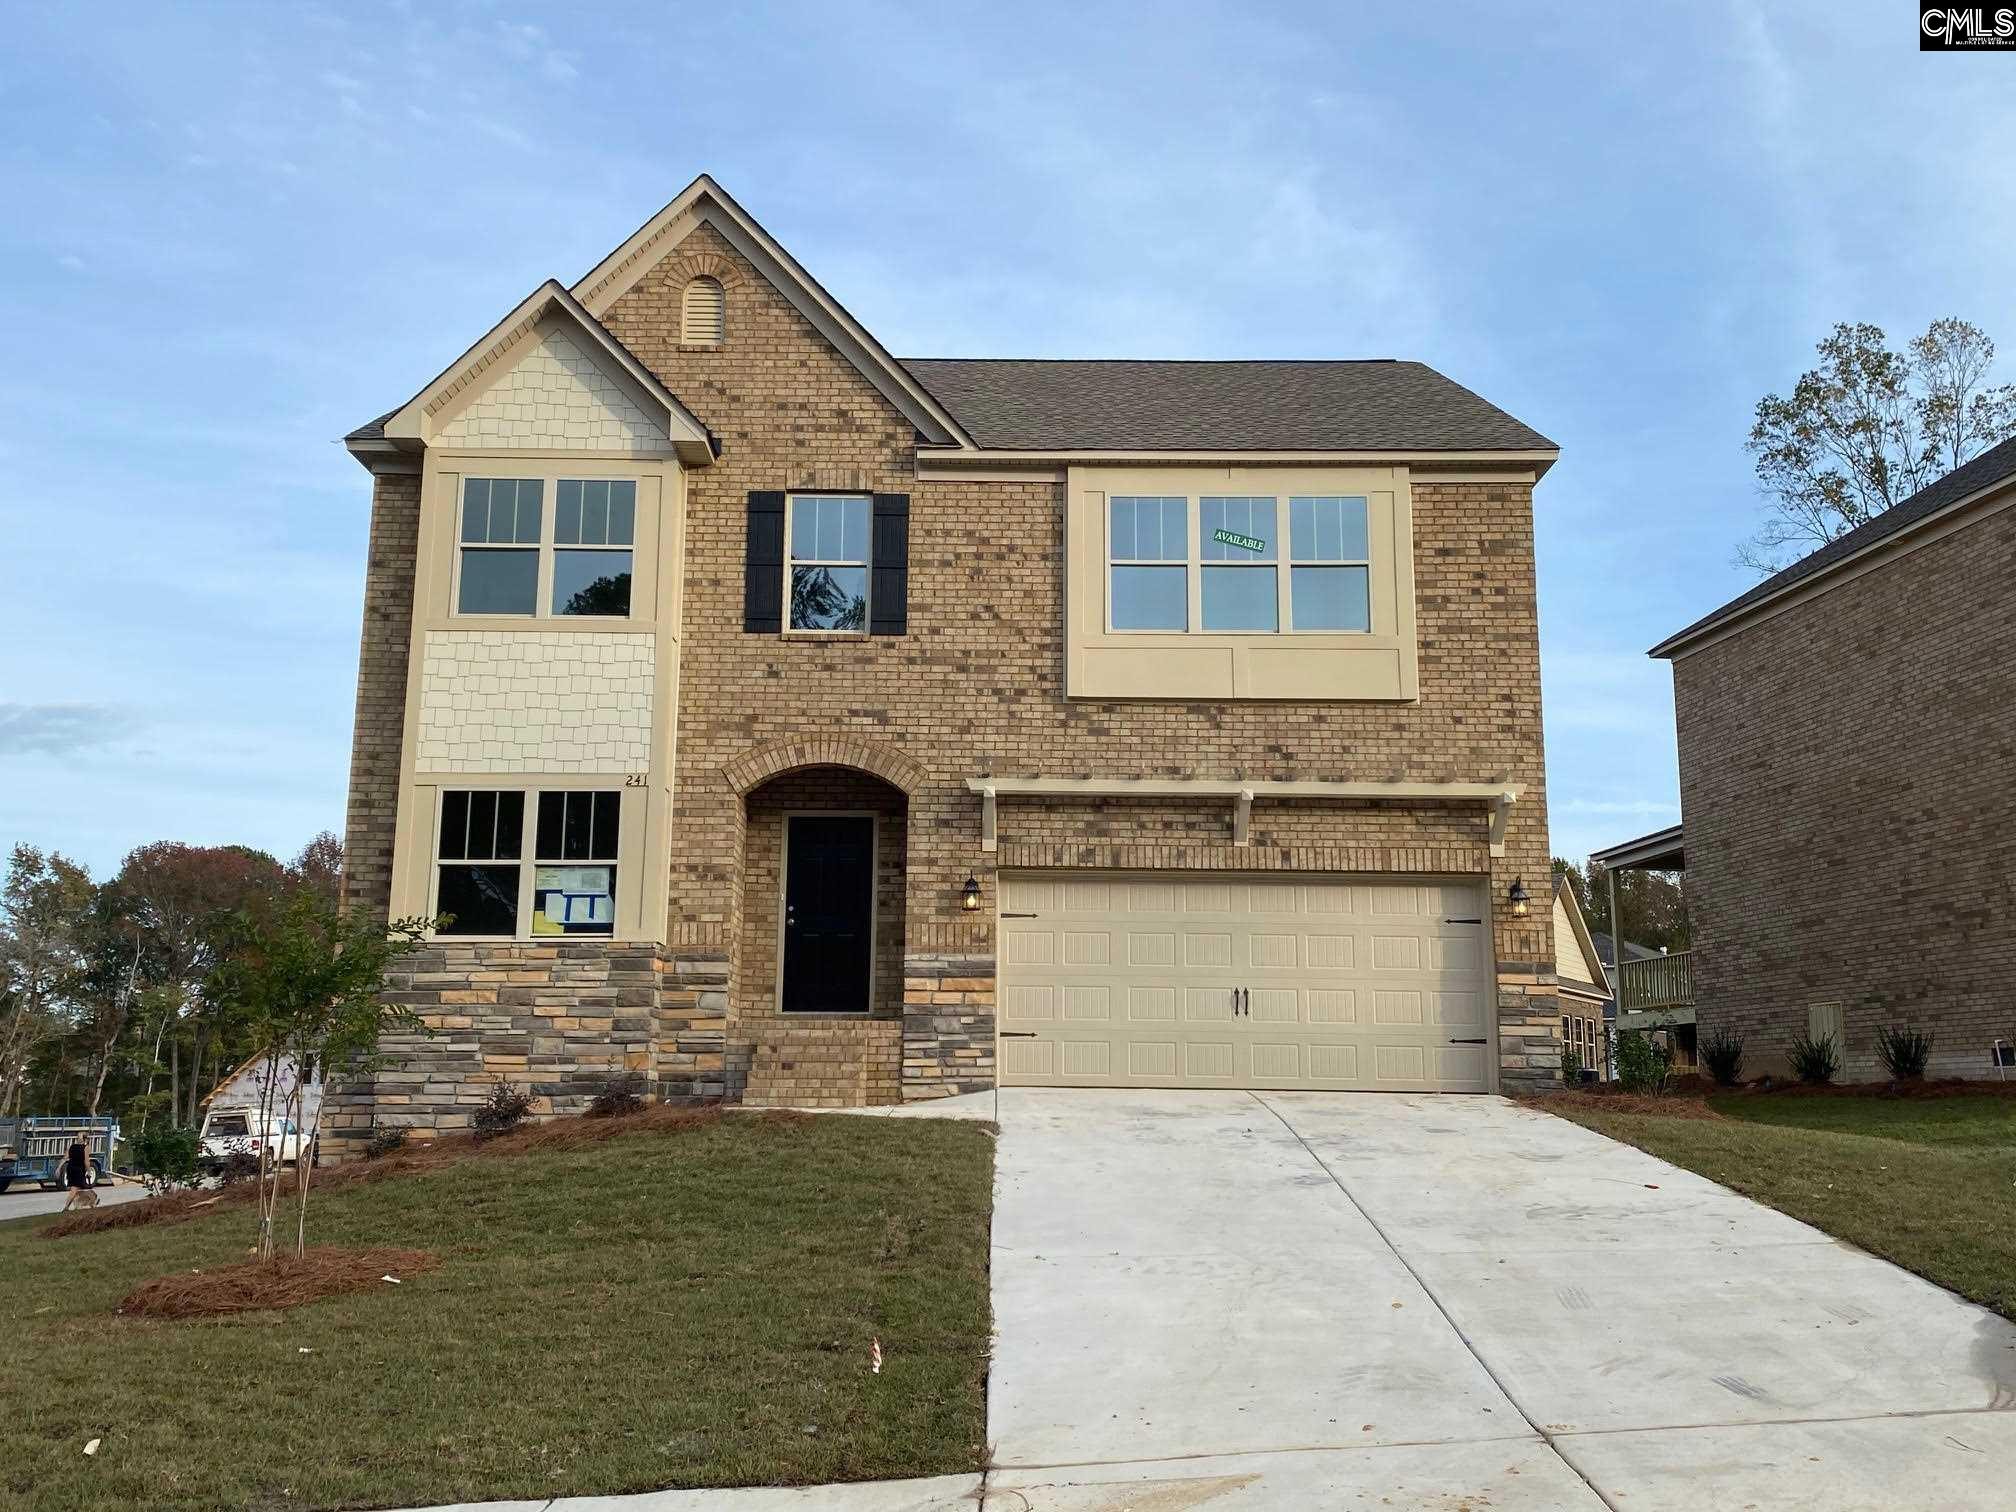 241 Cedar Hollow Irmo, SC 29063